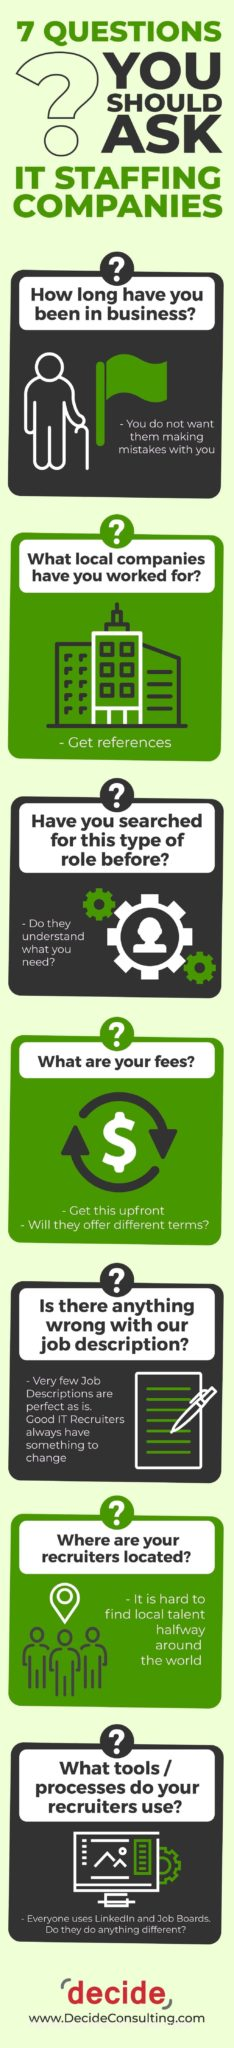 Infographic 7 Questions You Should Ask IT Staffing Companies